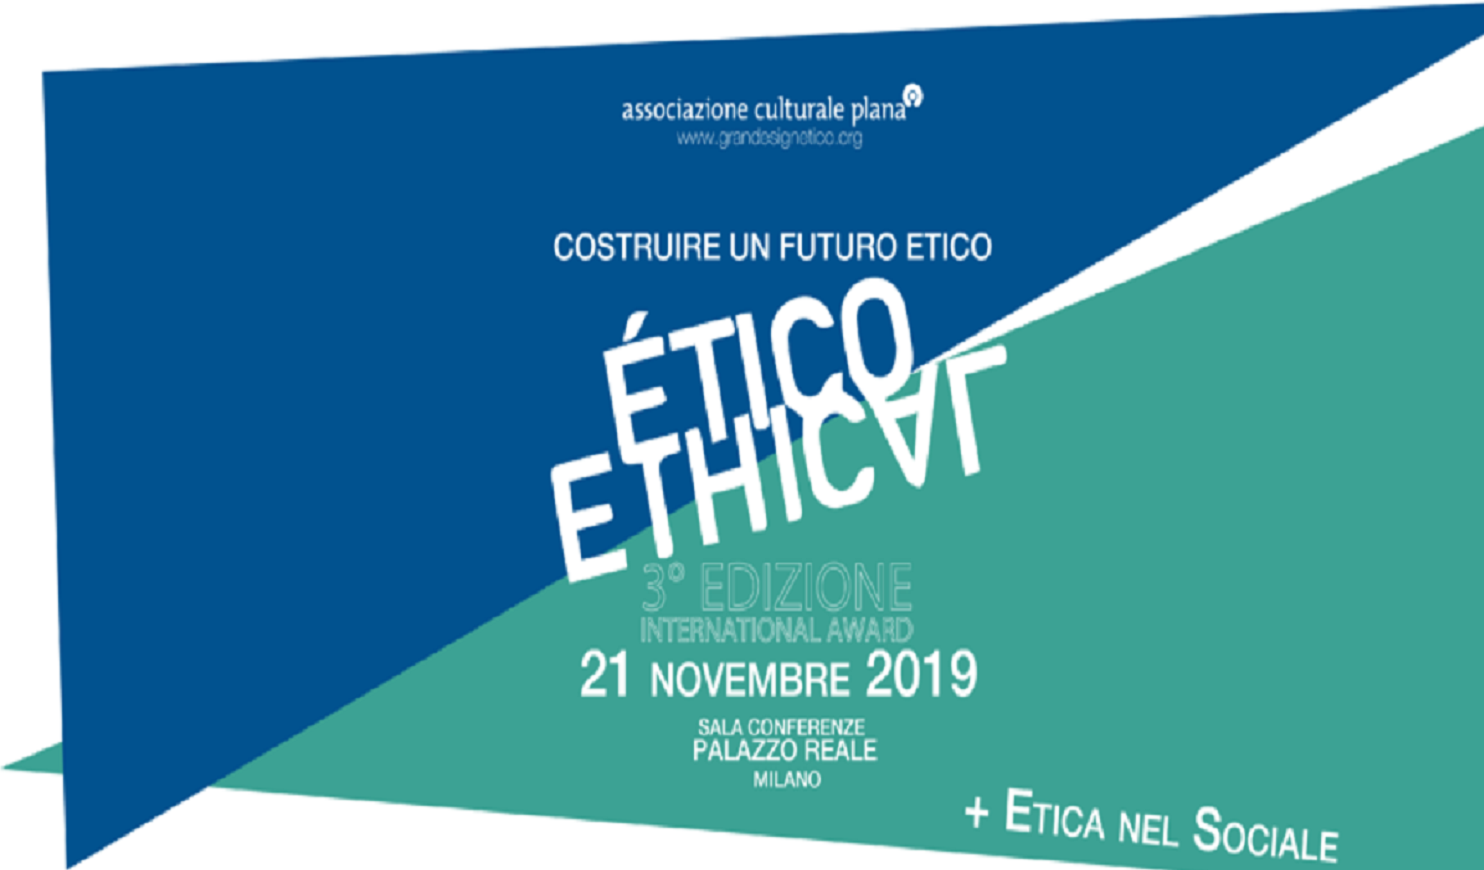 Al via Etico Ethical Award